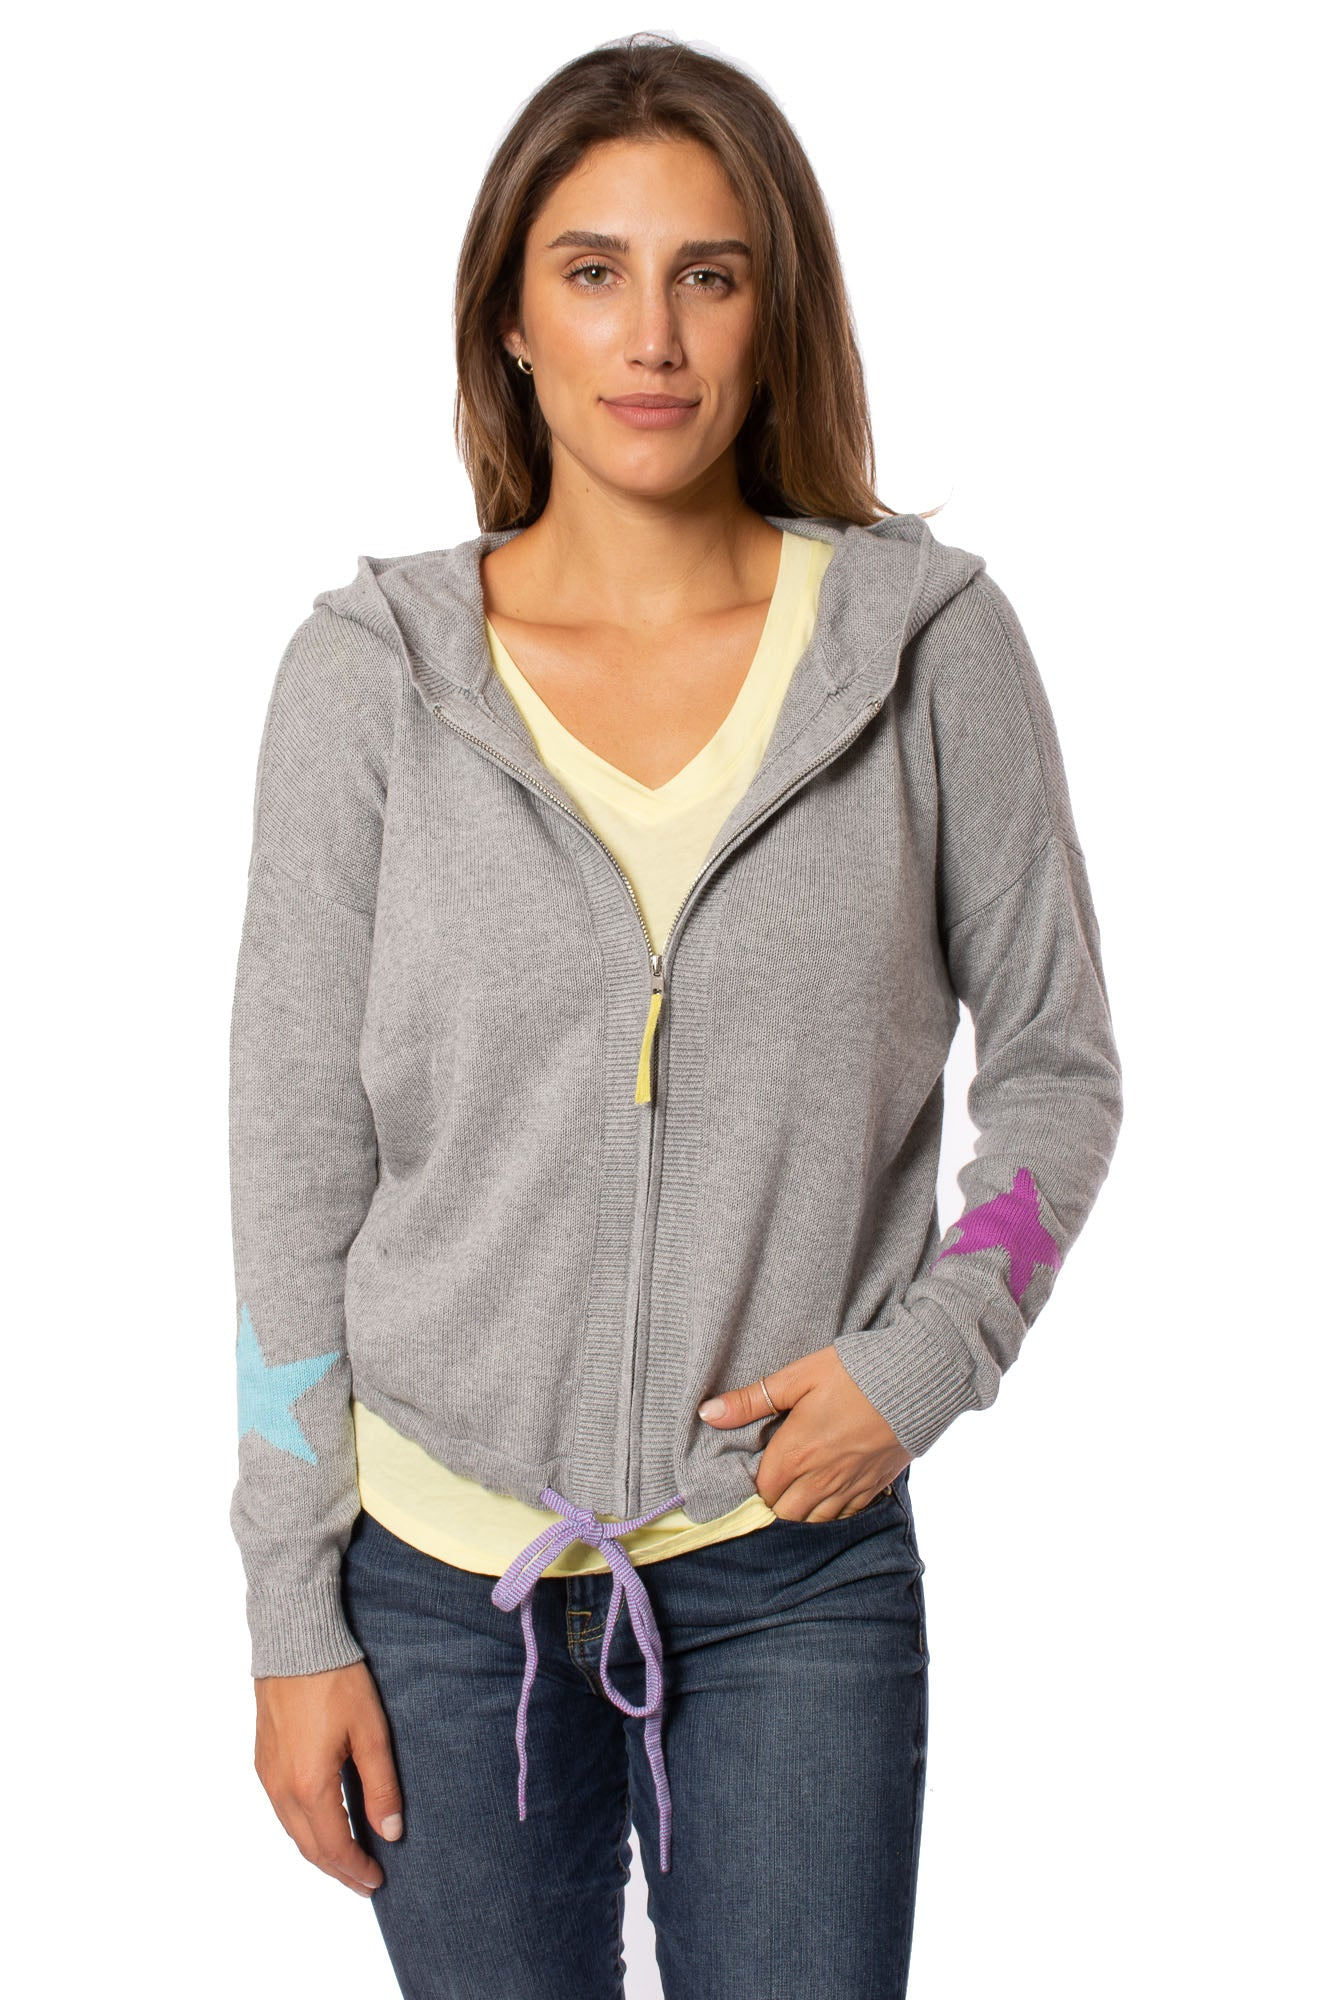 Zaket & Plover - Zip Up Hoodie (ZW2096U, Light Grey w/Stars)